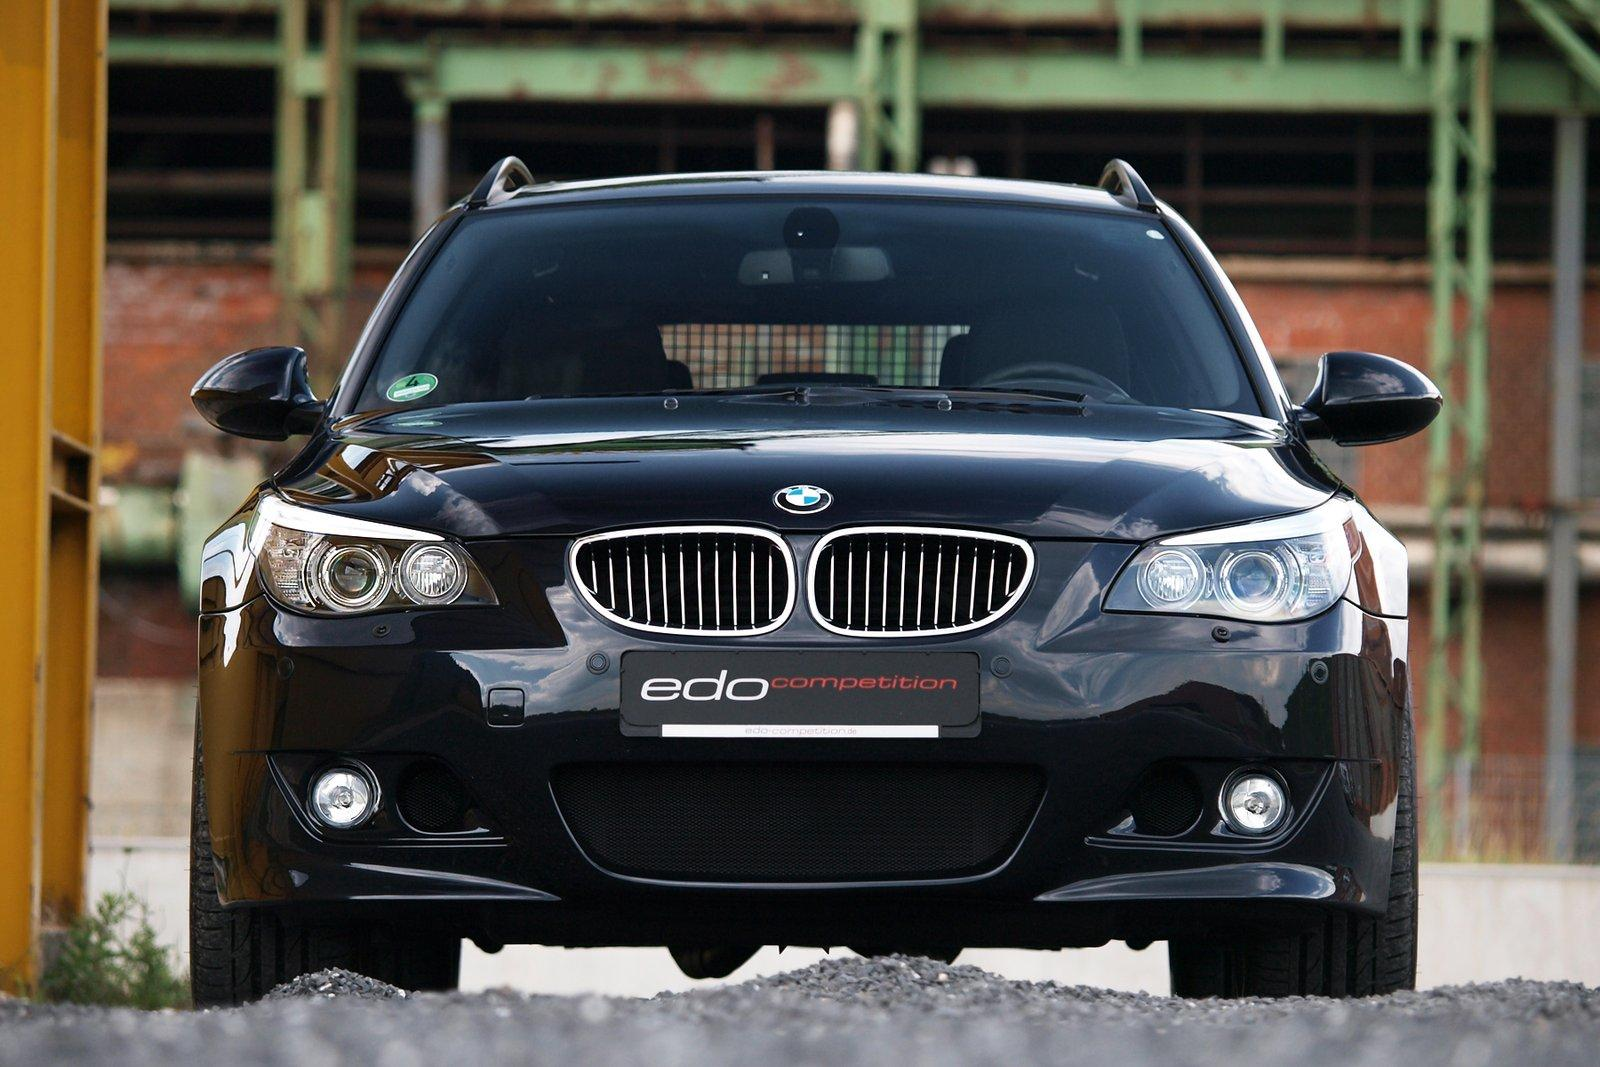 Edo Competition M5 Dark Edition Edo Competition M5 Dark Edition  Review